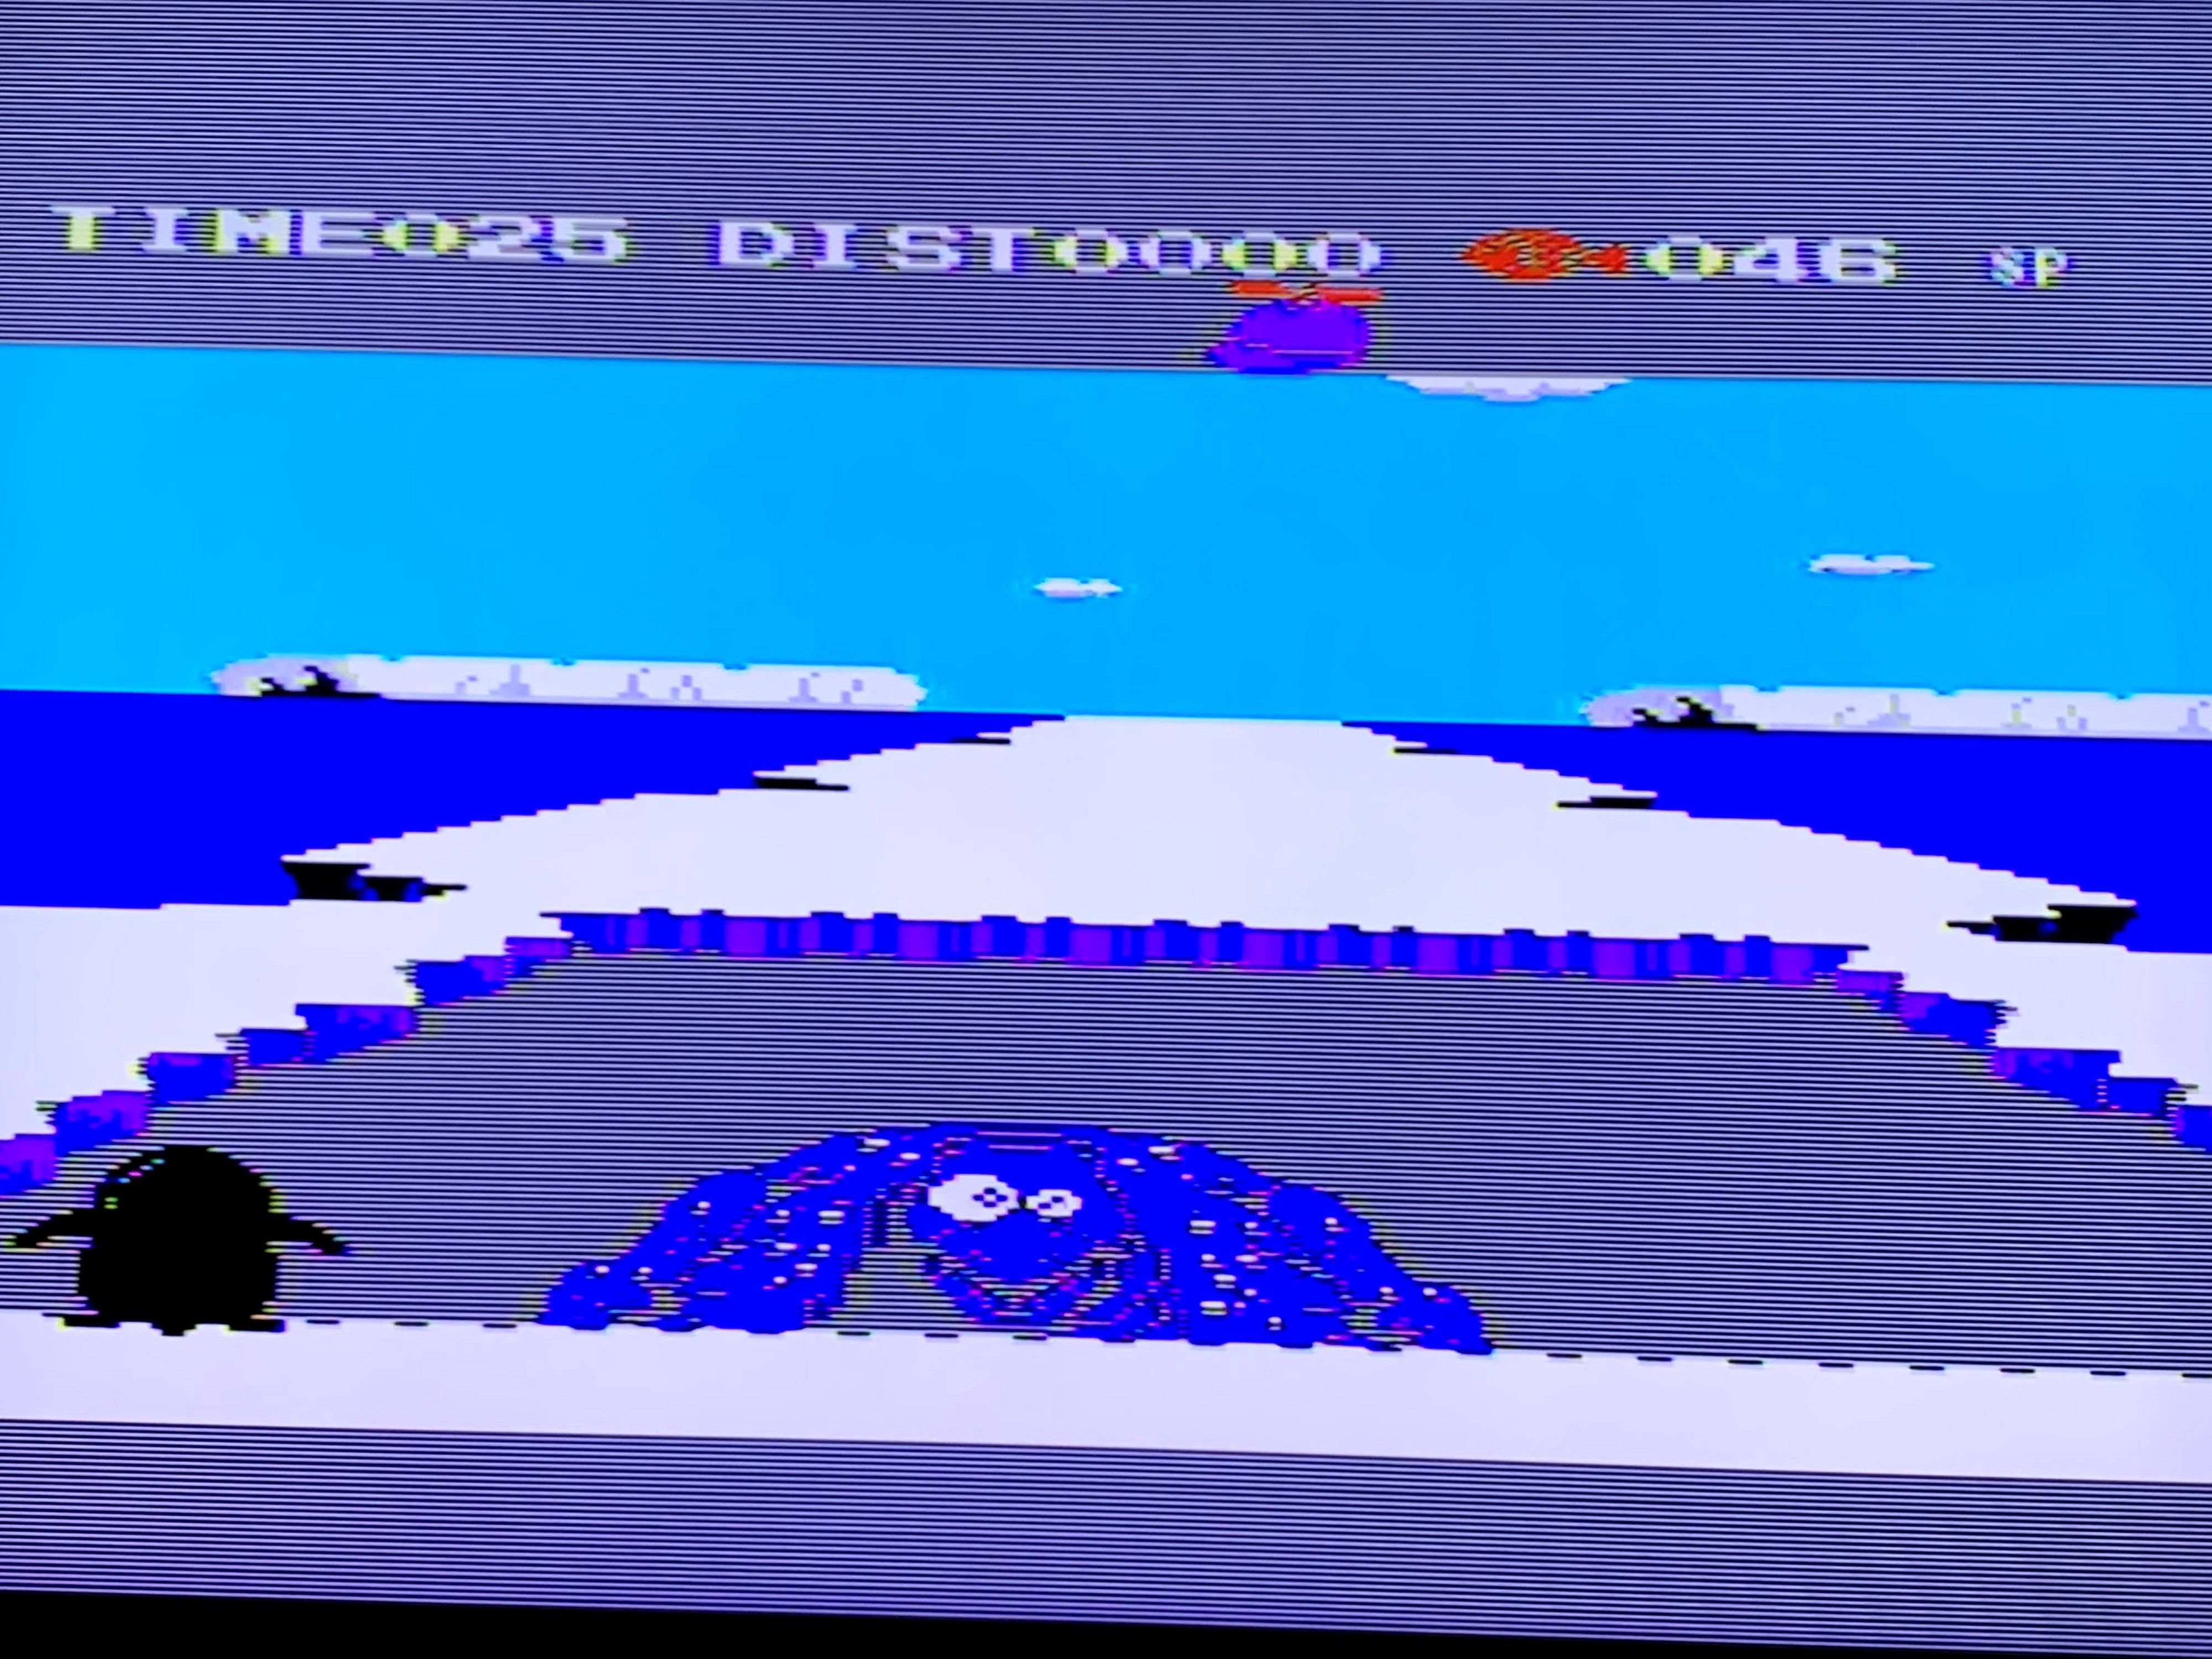 One of the boss rounds in Penguin Adventure. A Godzilla-like creature is about to fall into a hole in an arctic landscape.